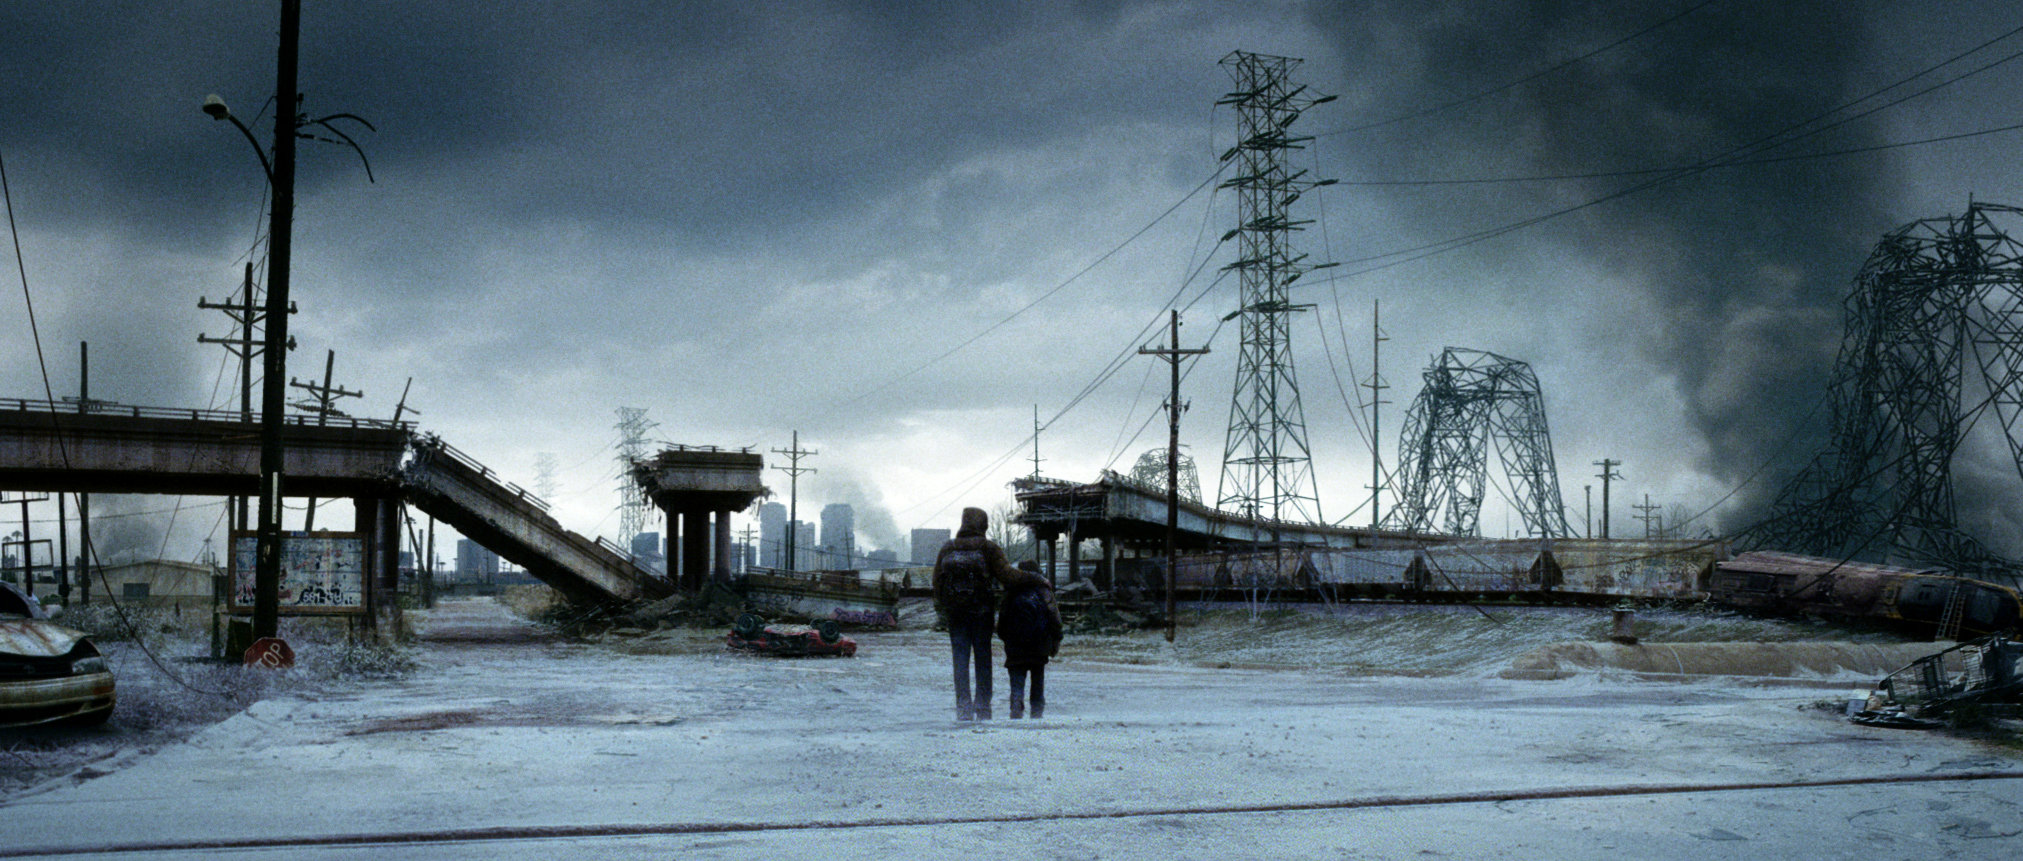 The Road Directed by John Hillcoat  111 minutes | Adventure/Drama